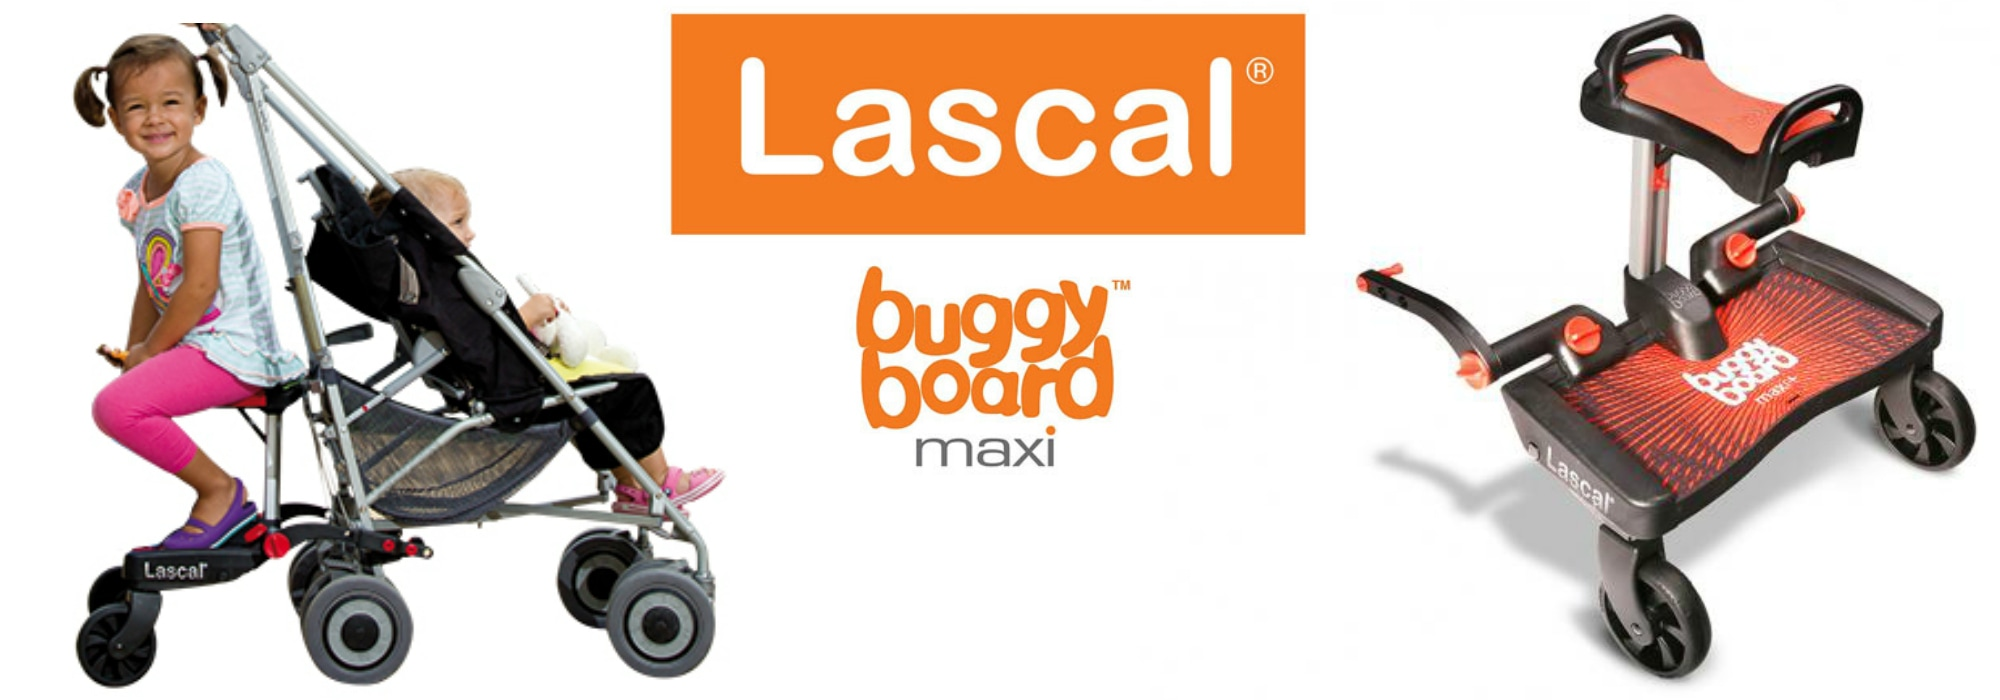 Win a Lascal BuggyBoard Maxi+ in US Japan Fam's $500 value